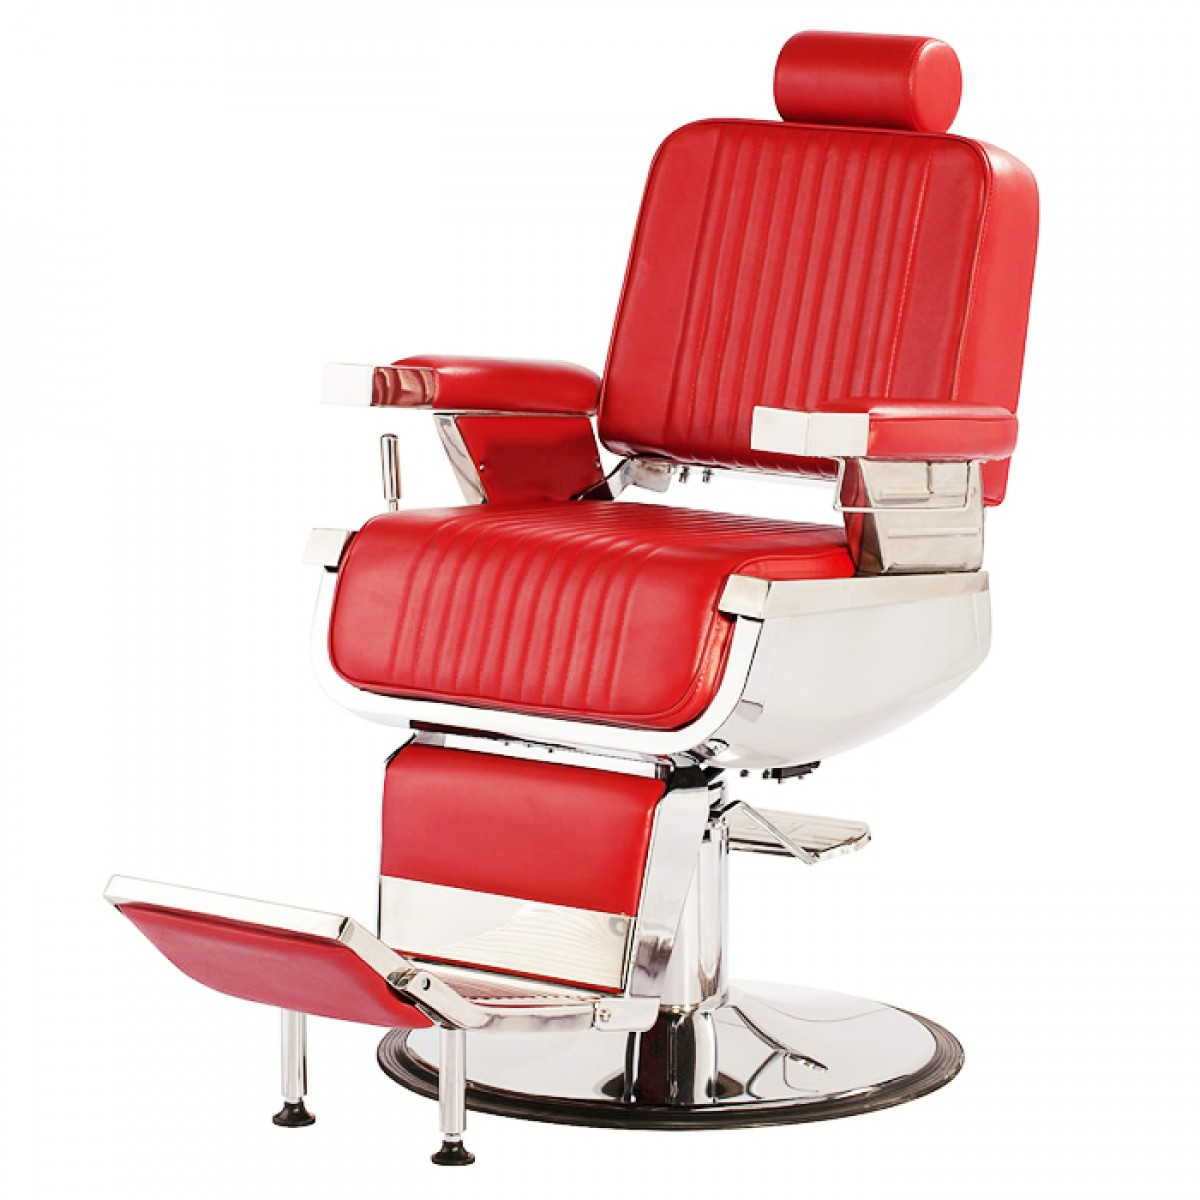 Barber Shop Chairs For Sale Quotconstantine Quot Barber Chair In Cardinal Red Red Barber